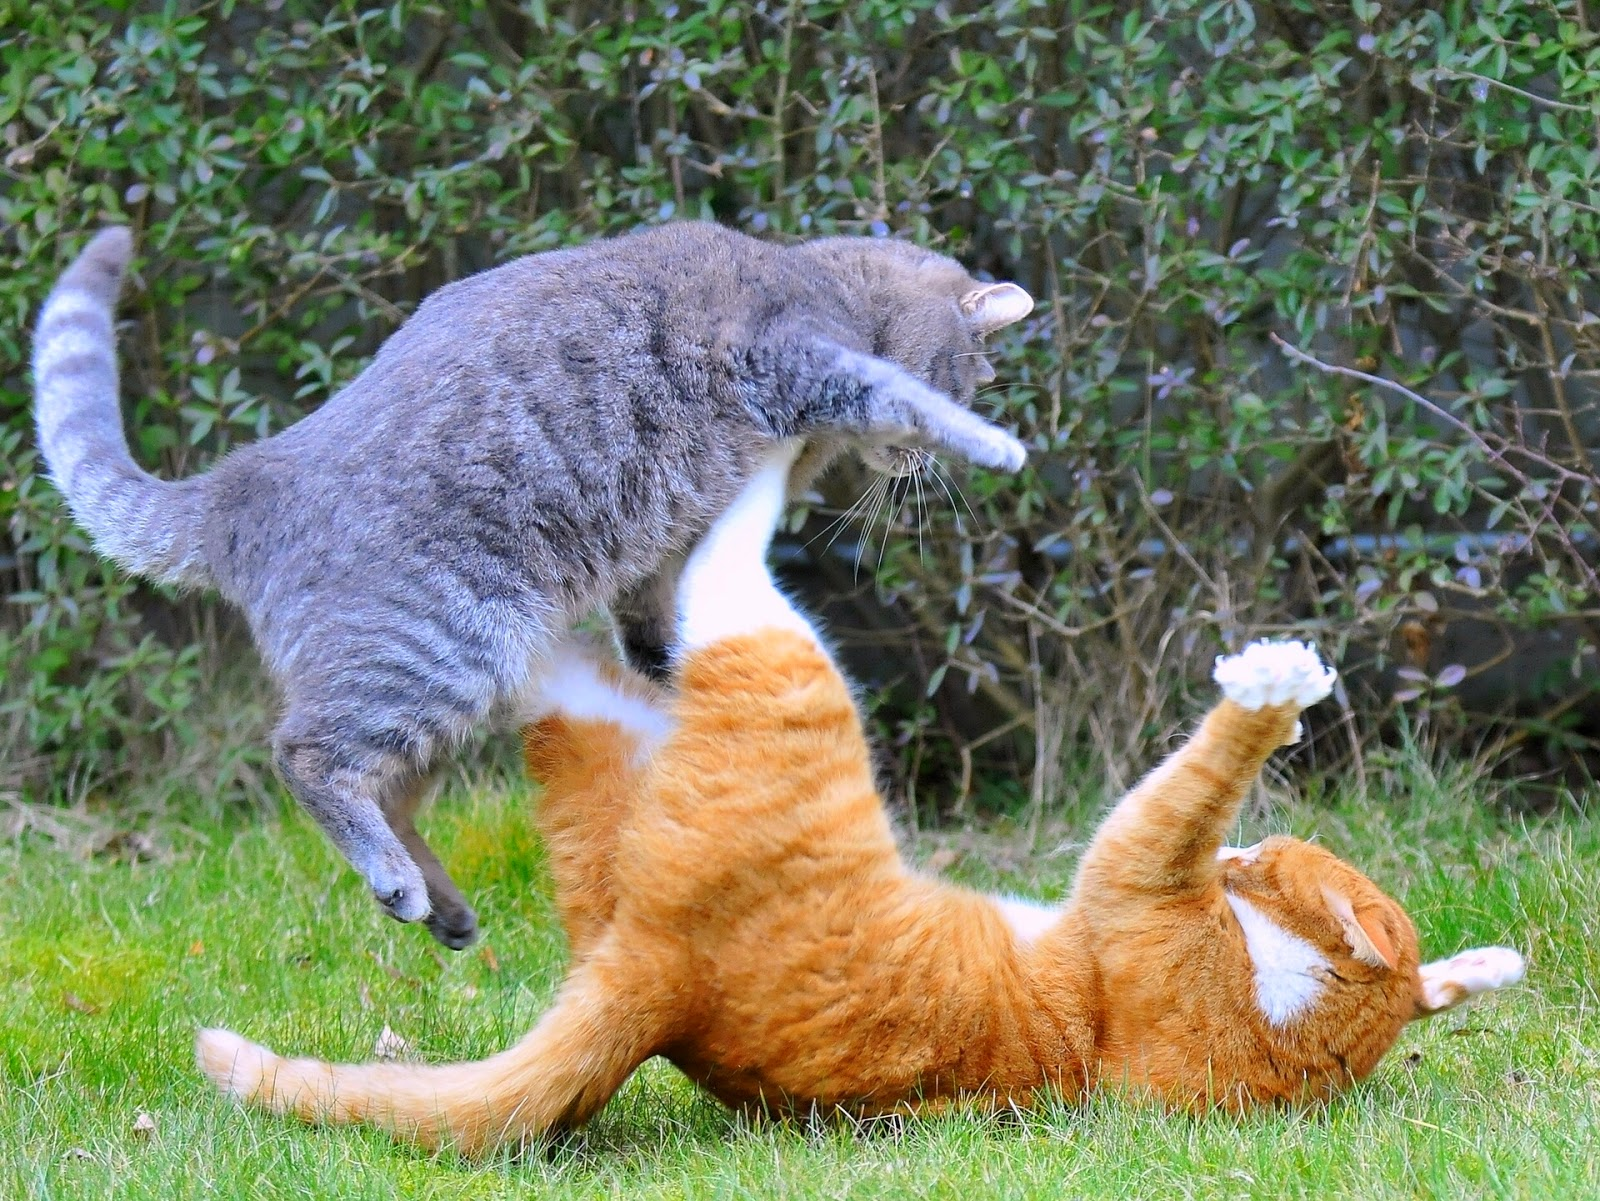 Gray tabby cat and orange tabby cat fighting | Exclusively Cats Veterinary Hospital Waterford, MI